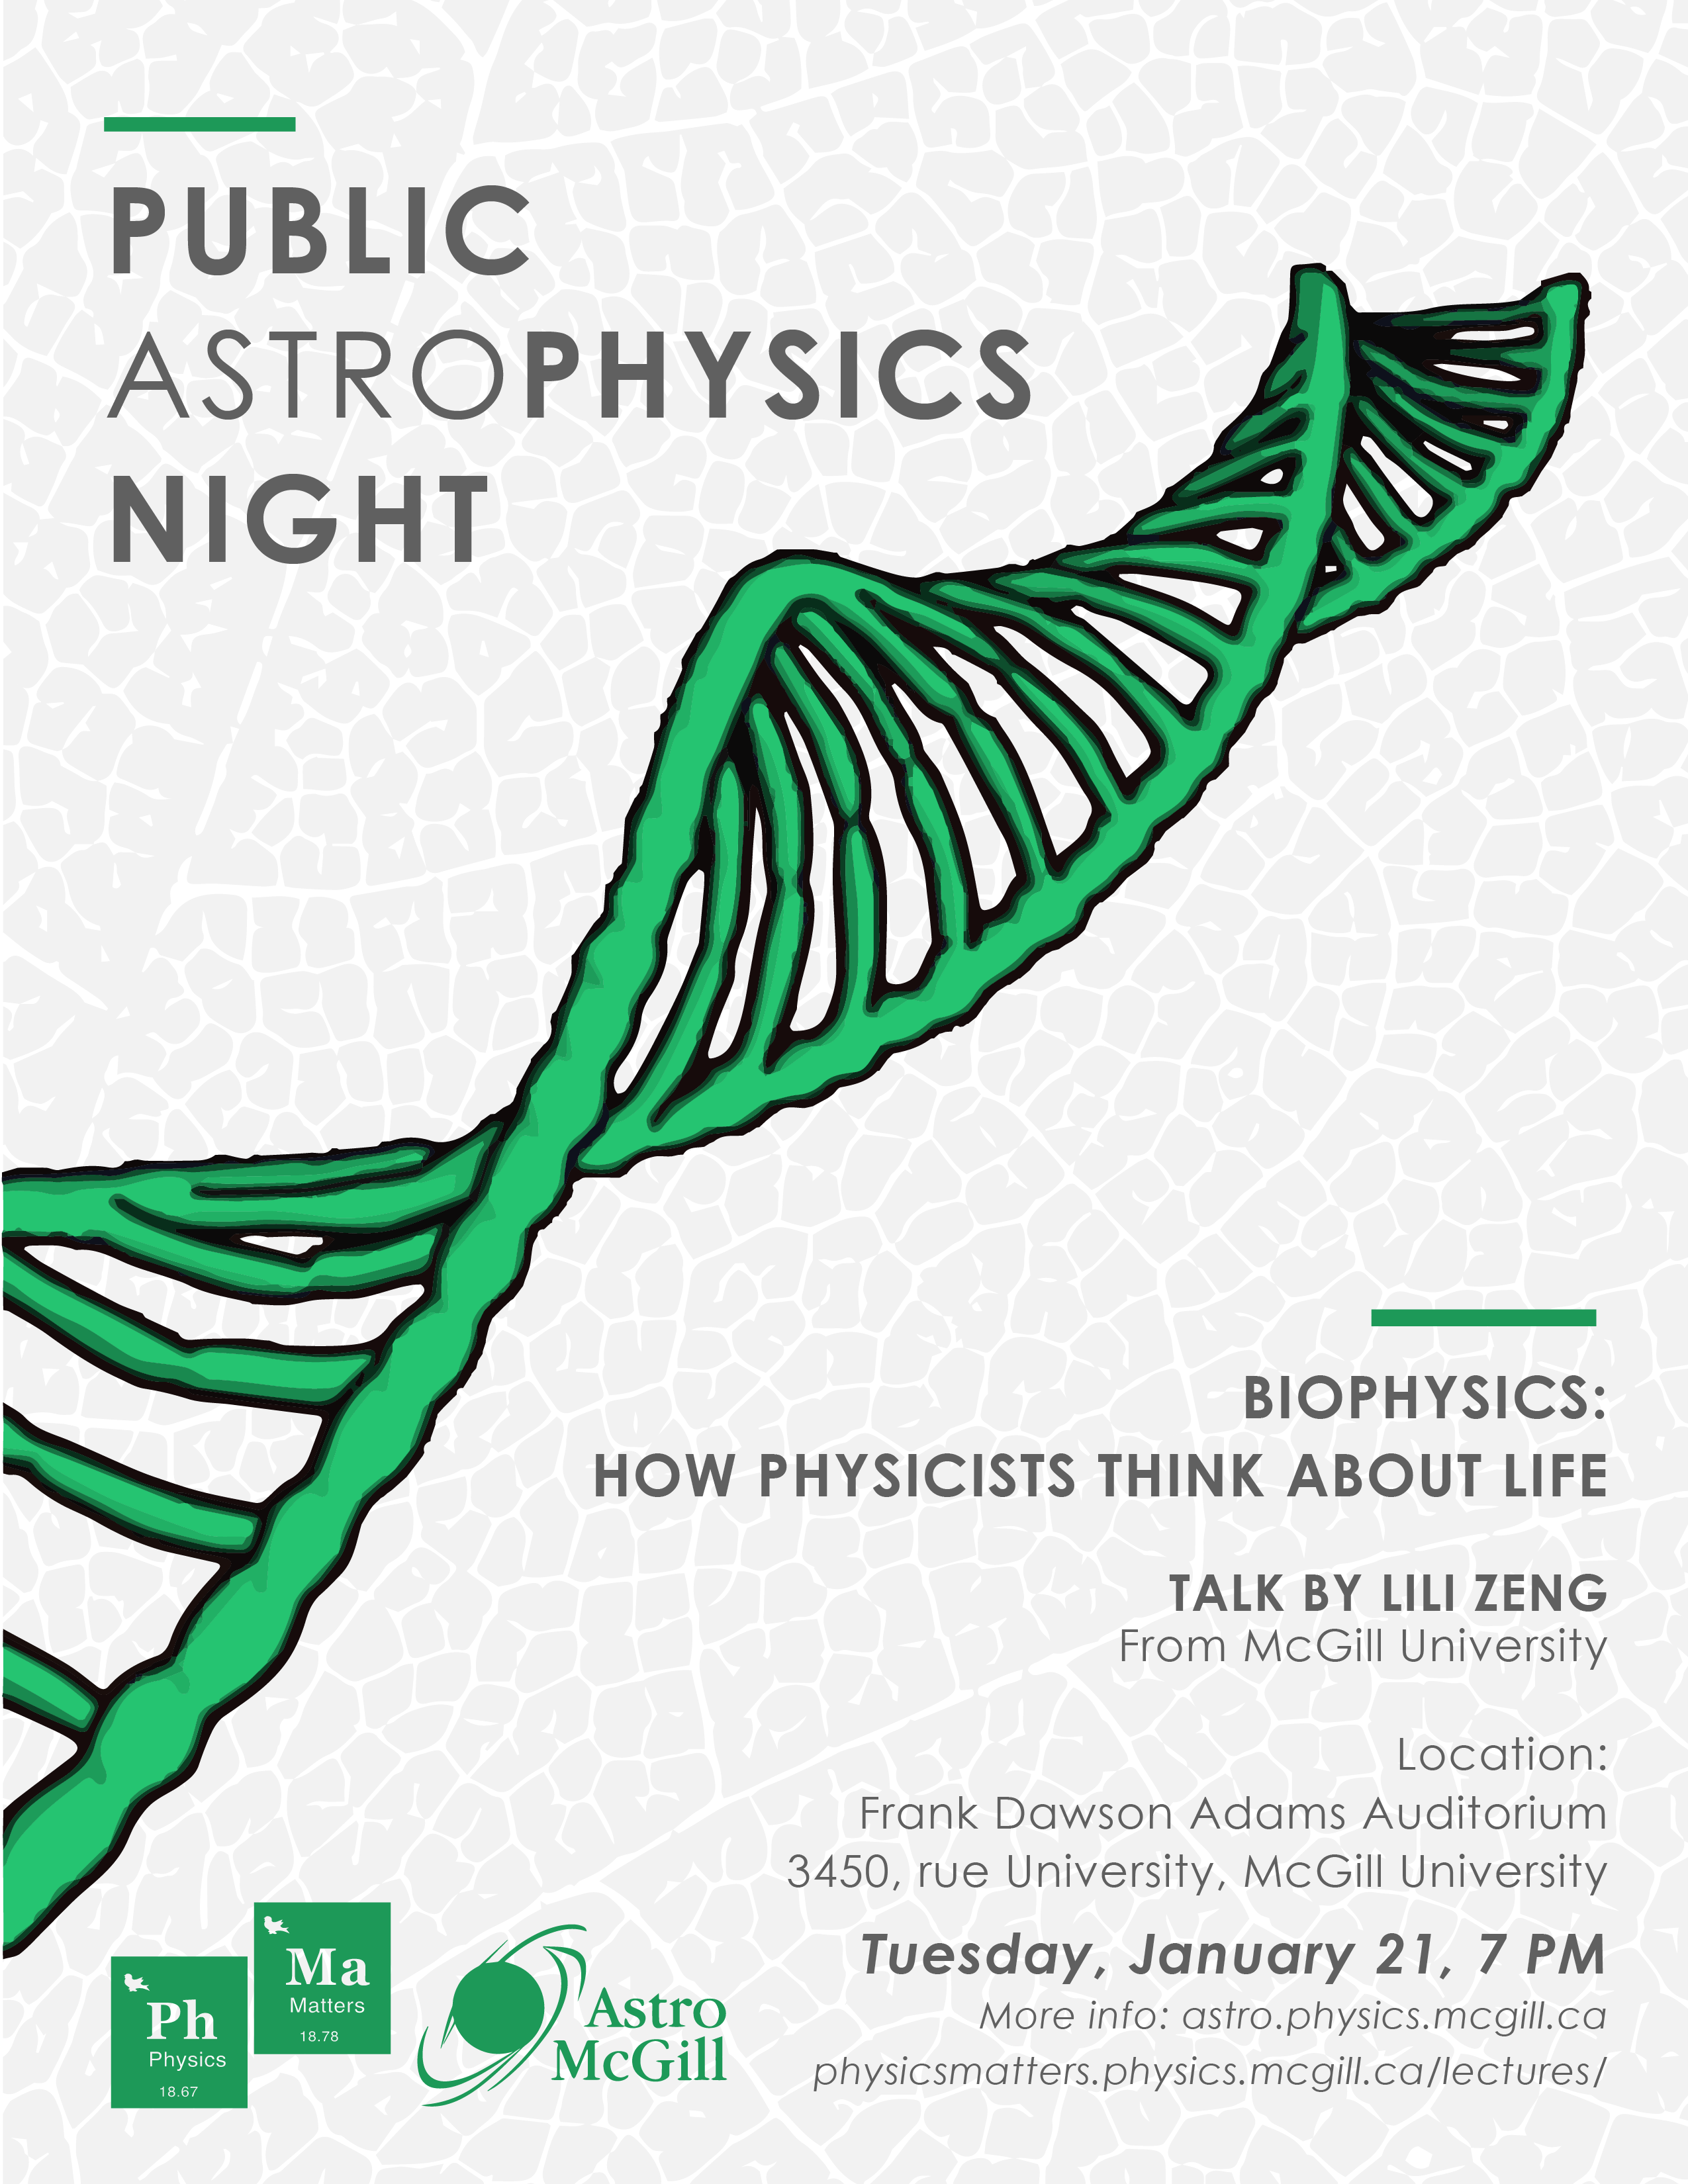 Biophysics: How Physicists Think About Life